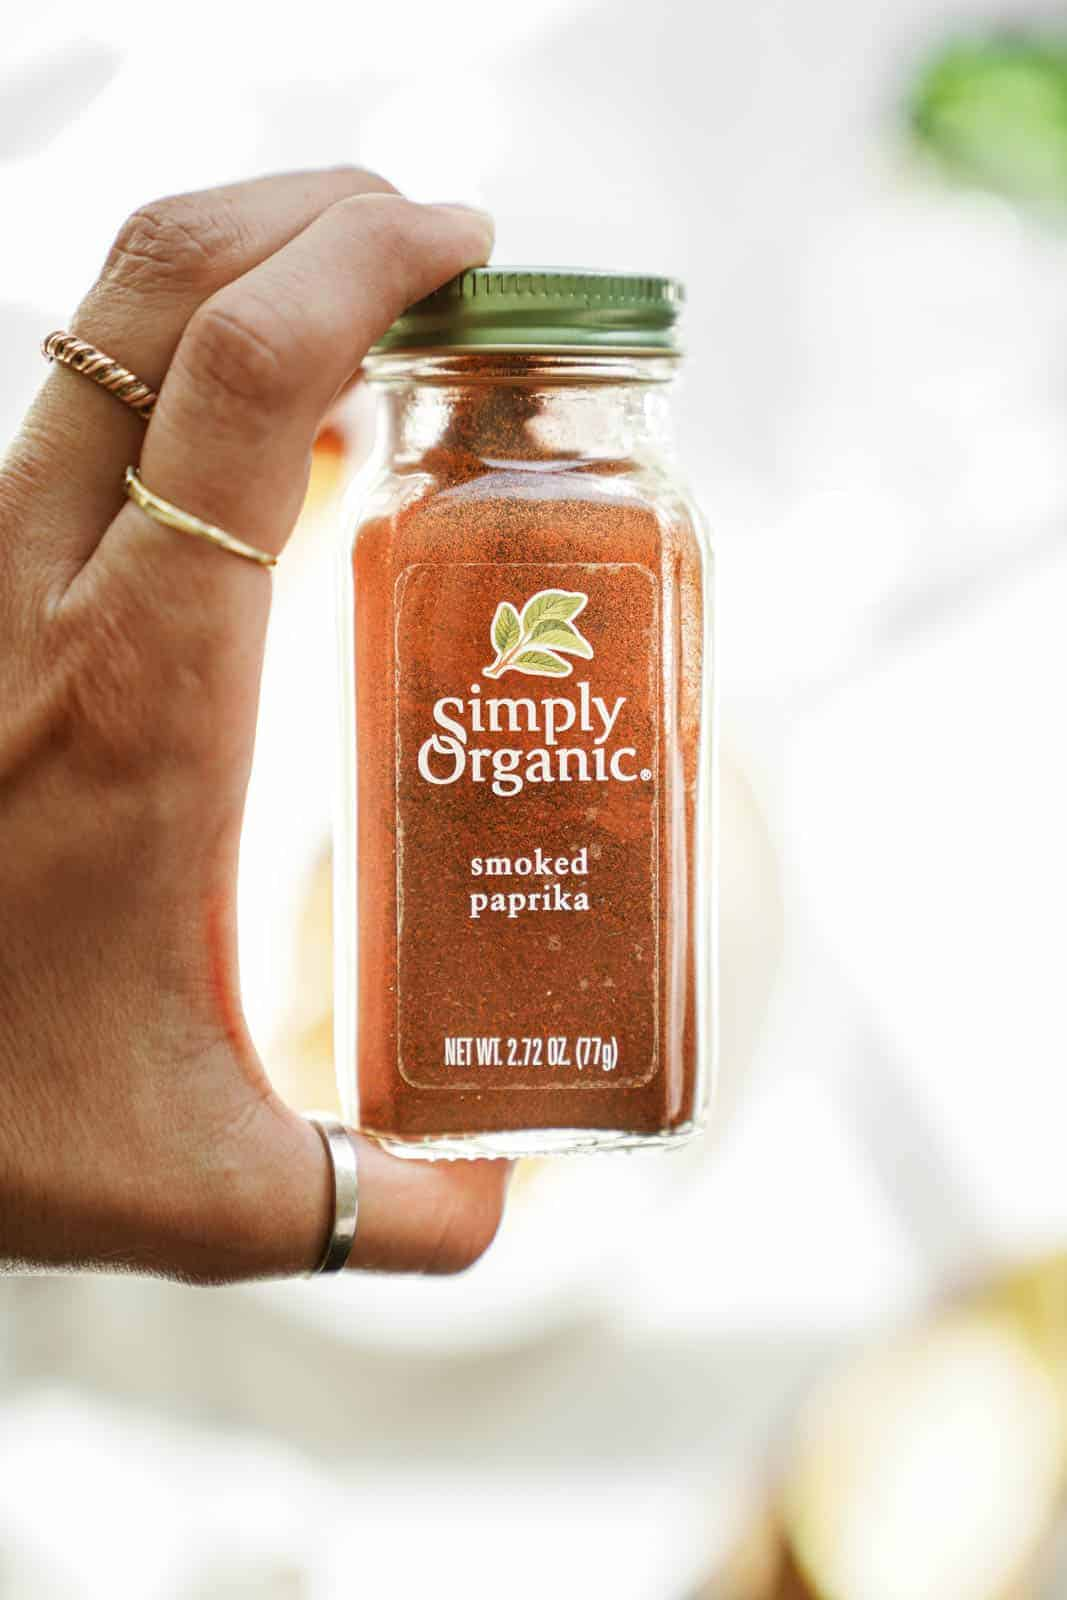 Simply Organic Smoked Paprika in a hand